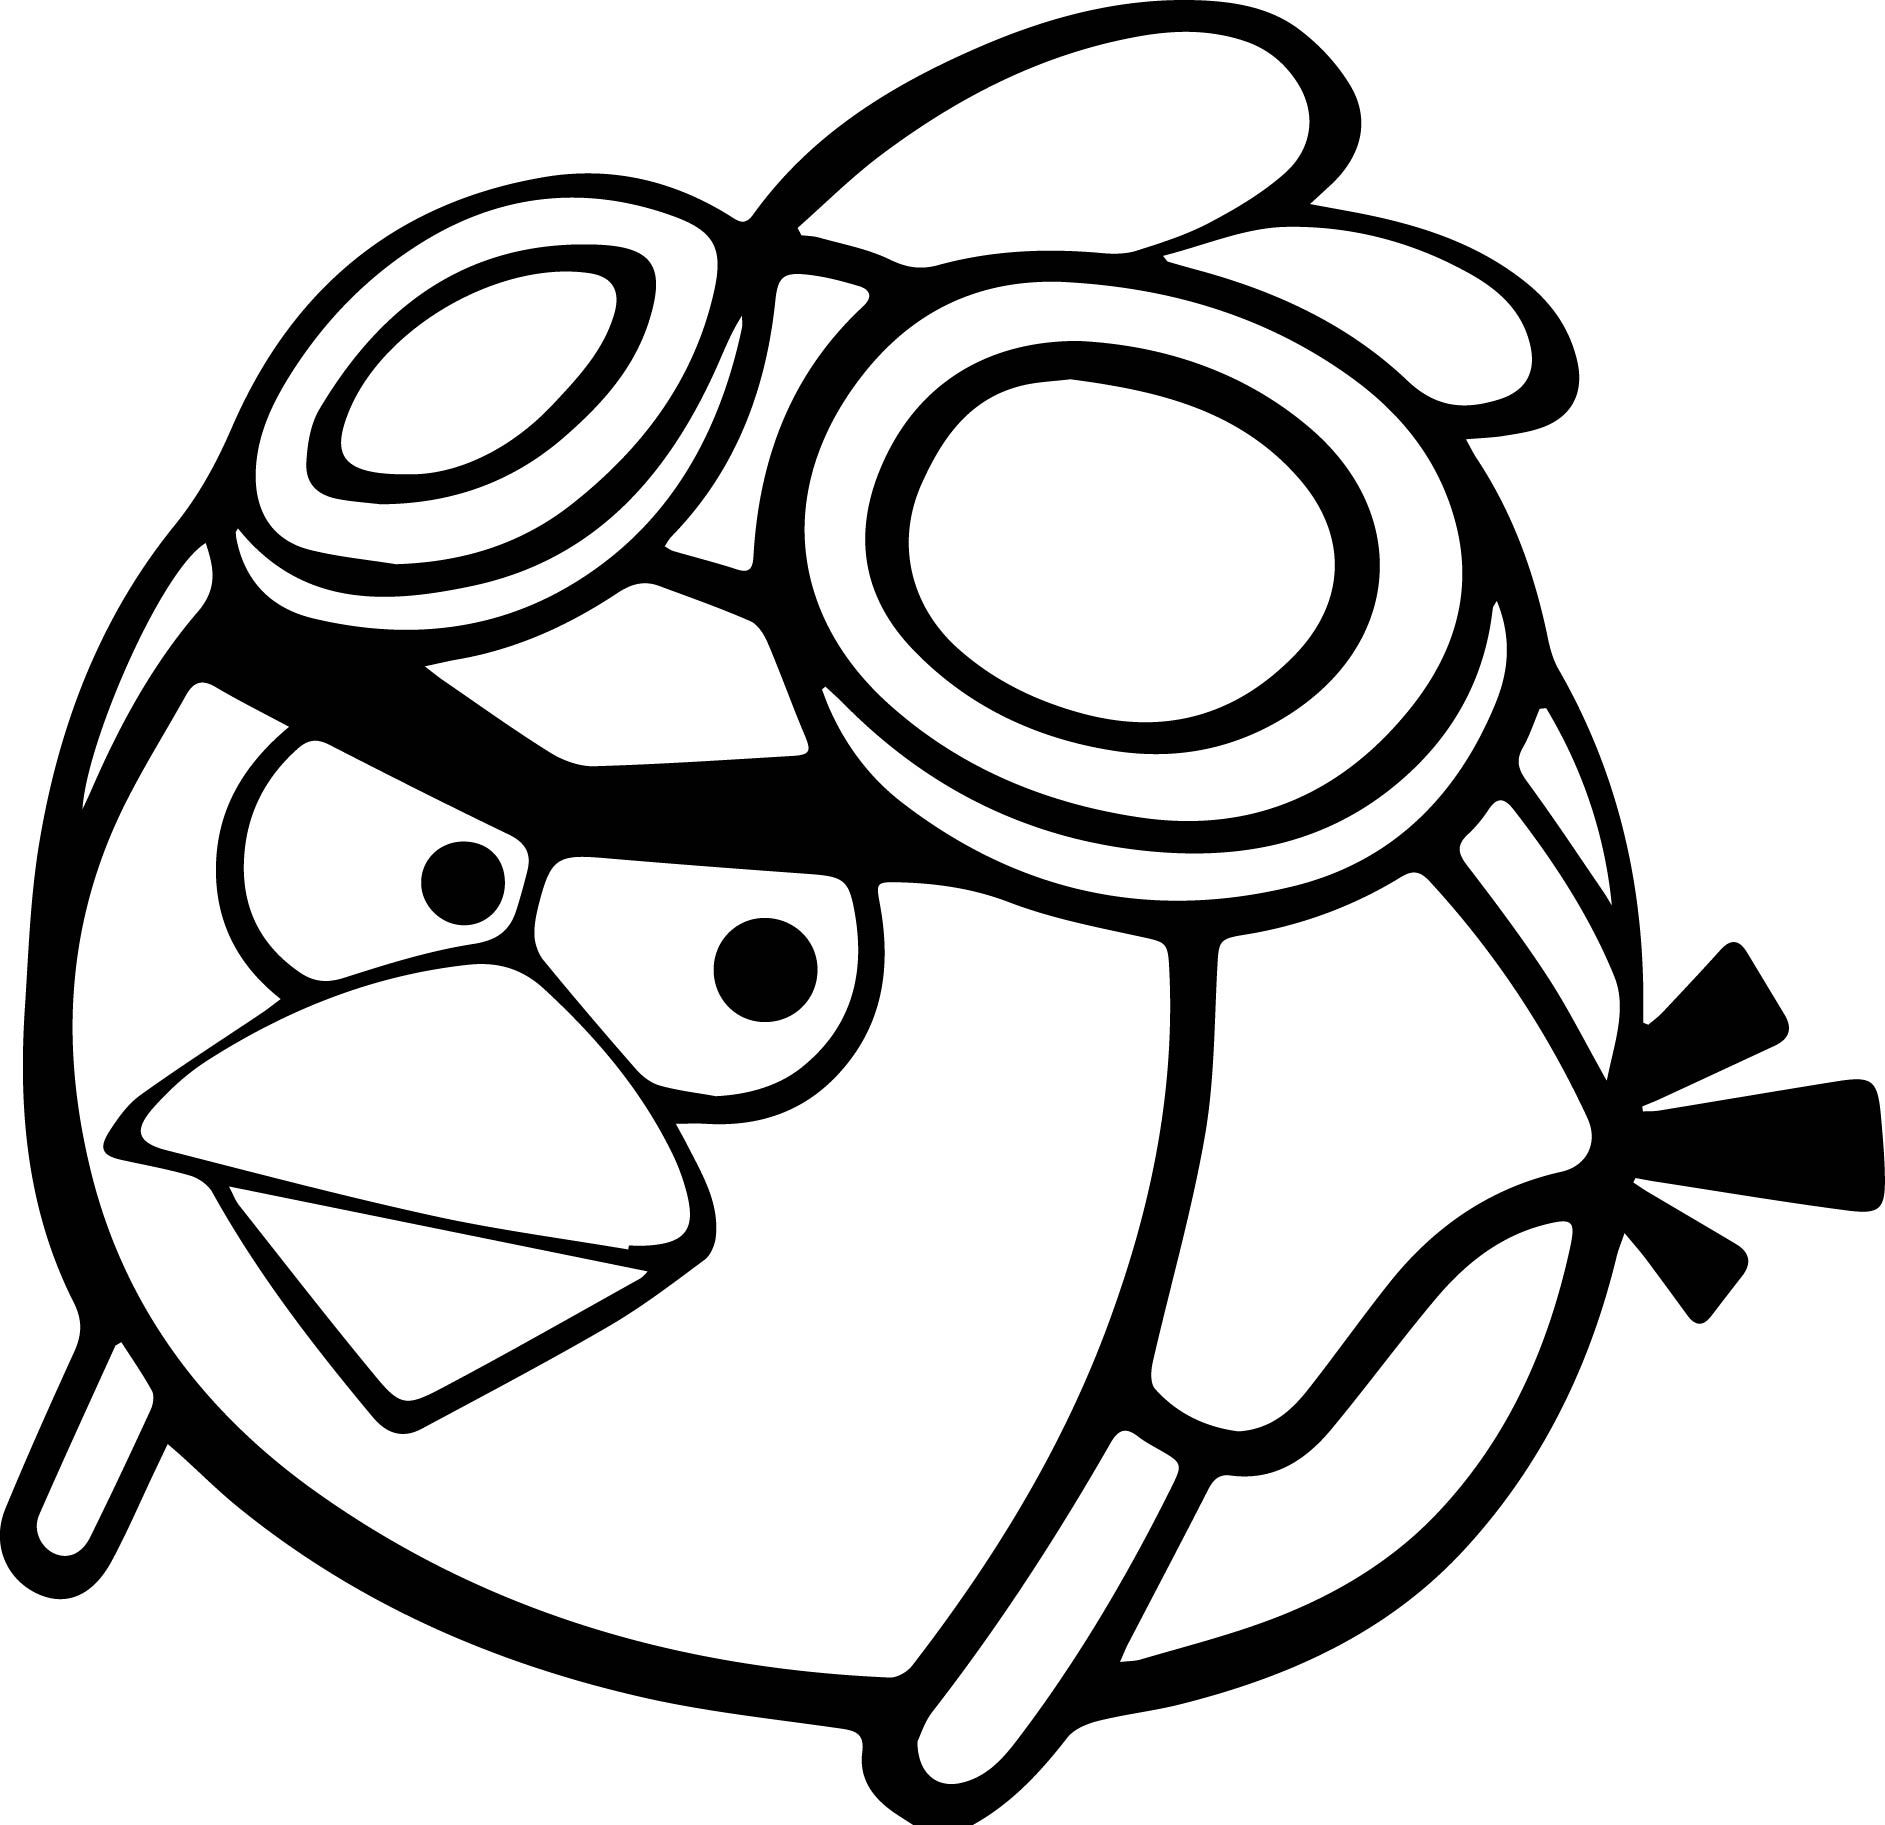 angry birds pictures to print angry birds coloring pages angry birds print pictures to